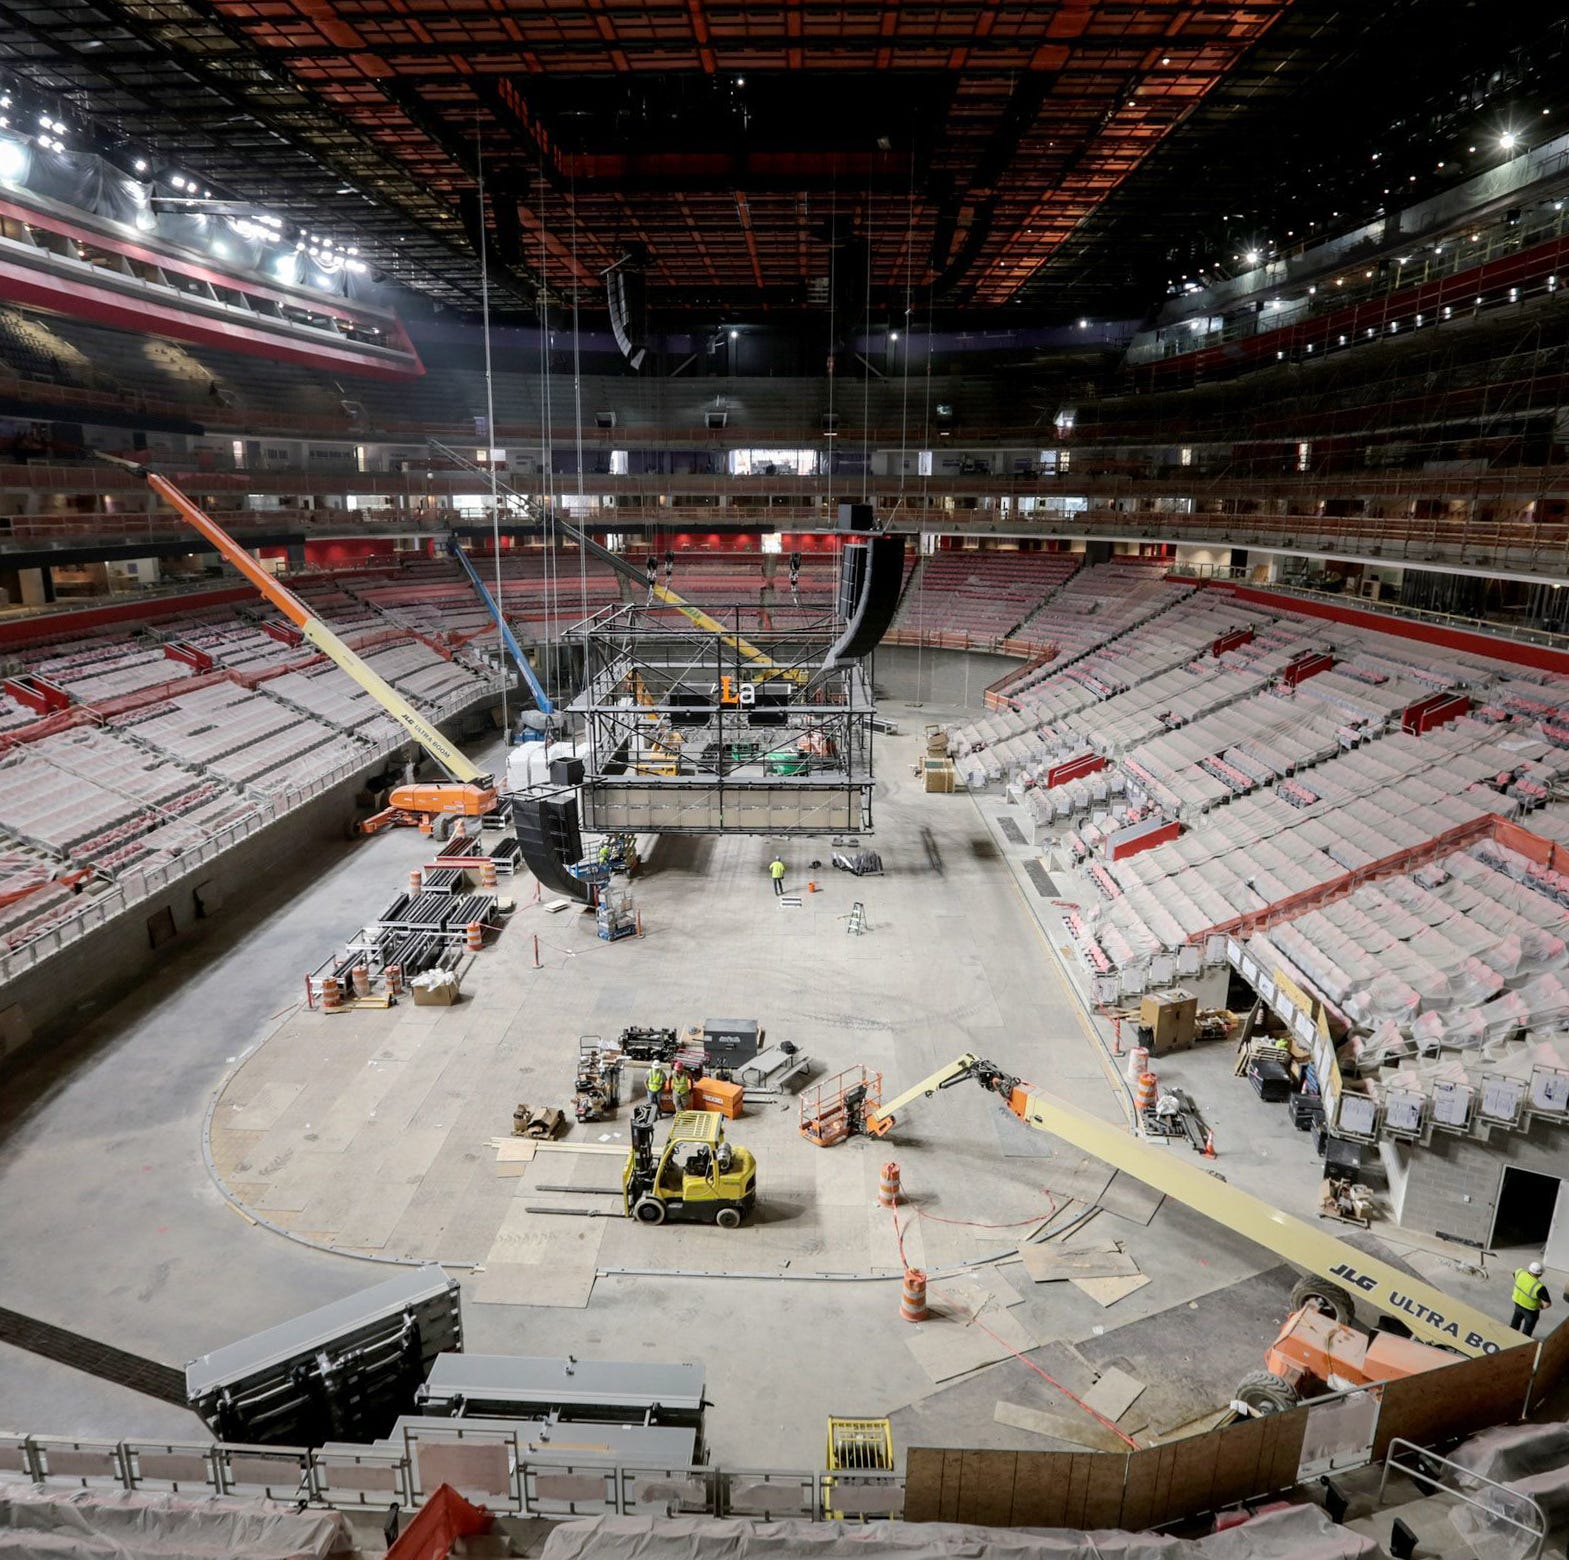 A worker's death at a Detroit arena was called a suicide. Some safety experts disagree